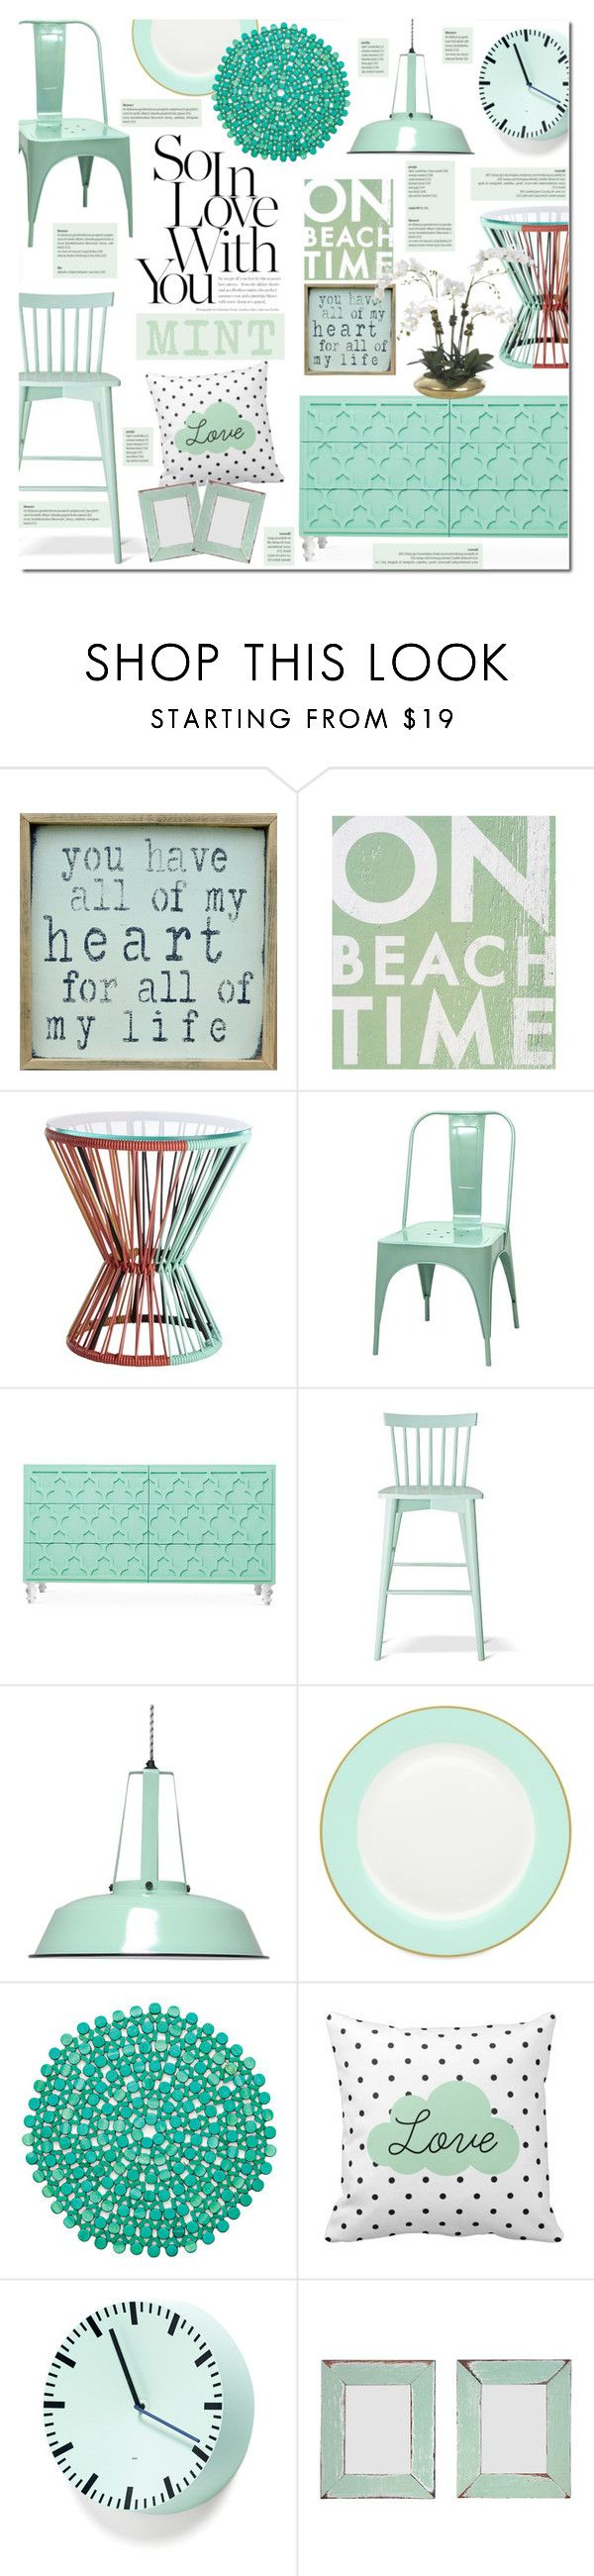 """""""Love Mint"""" by justlovedesign on Polyvore featuring interior, interiors, interior design, home, home decor, interior decorating, Pink Marmalade, Go Jump in the Lake, CB2 and Dot & Bo"""